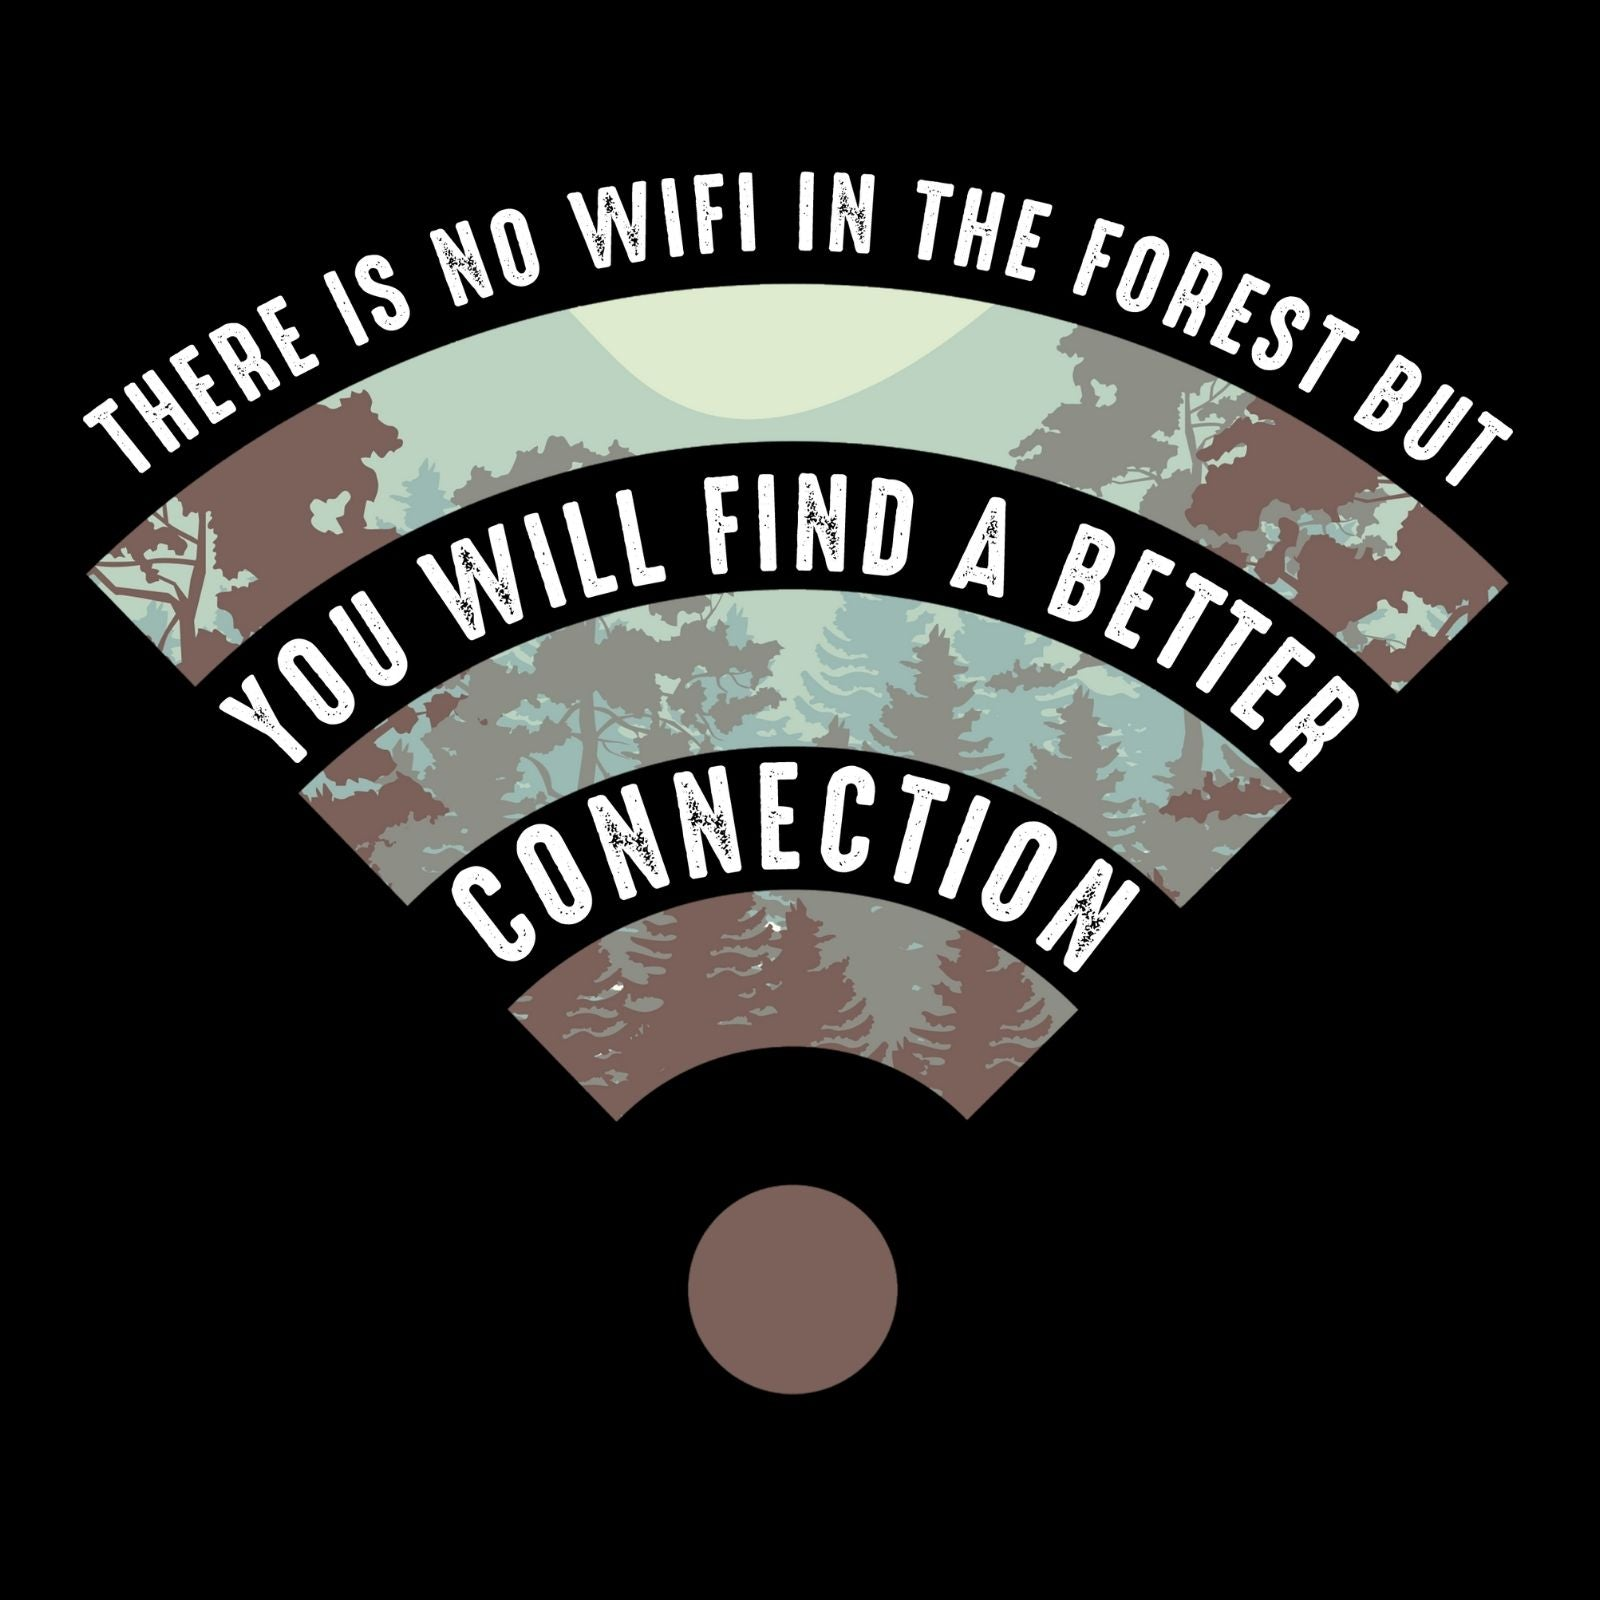 There Is No Wifi In The Forest But You Will Find A Better Connection - Bastard Graphics